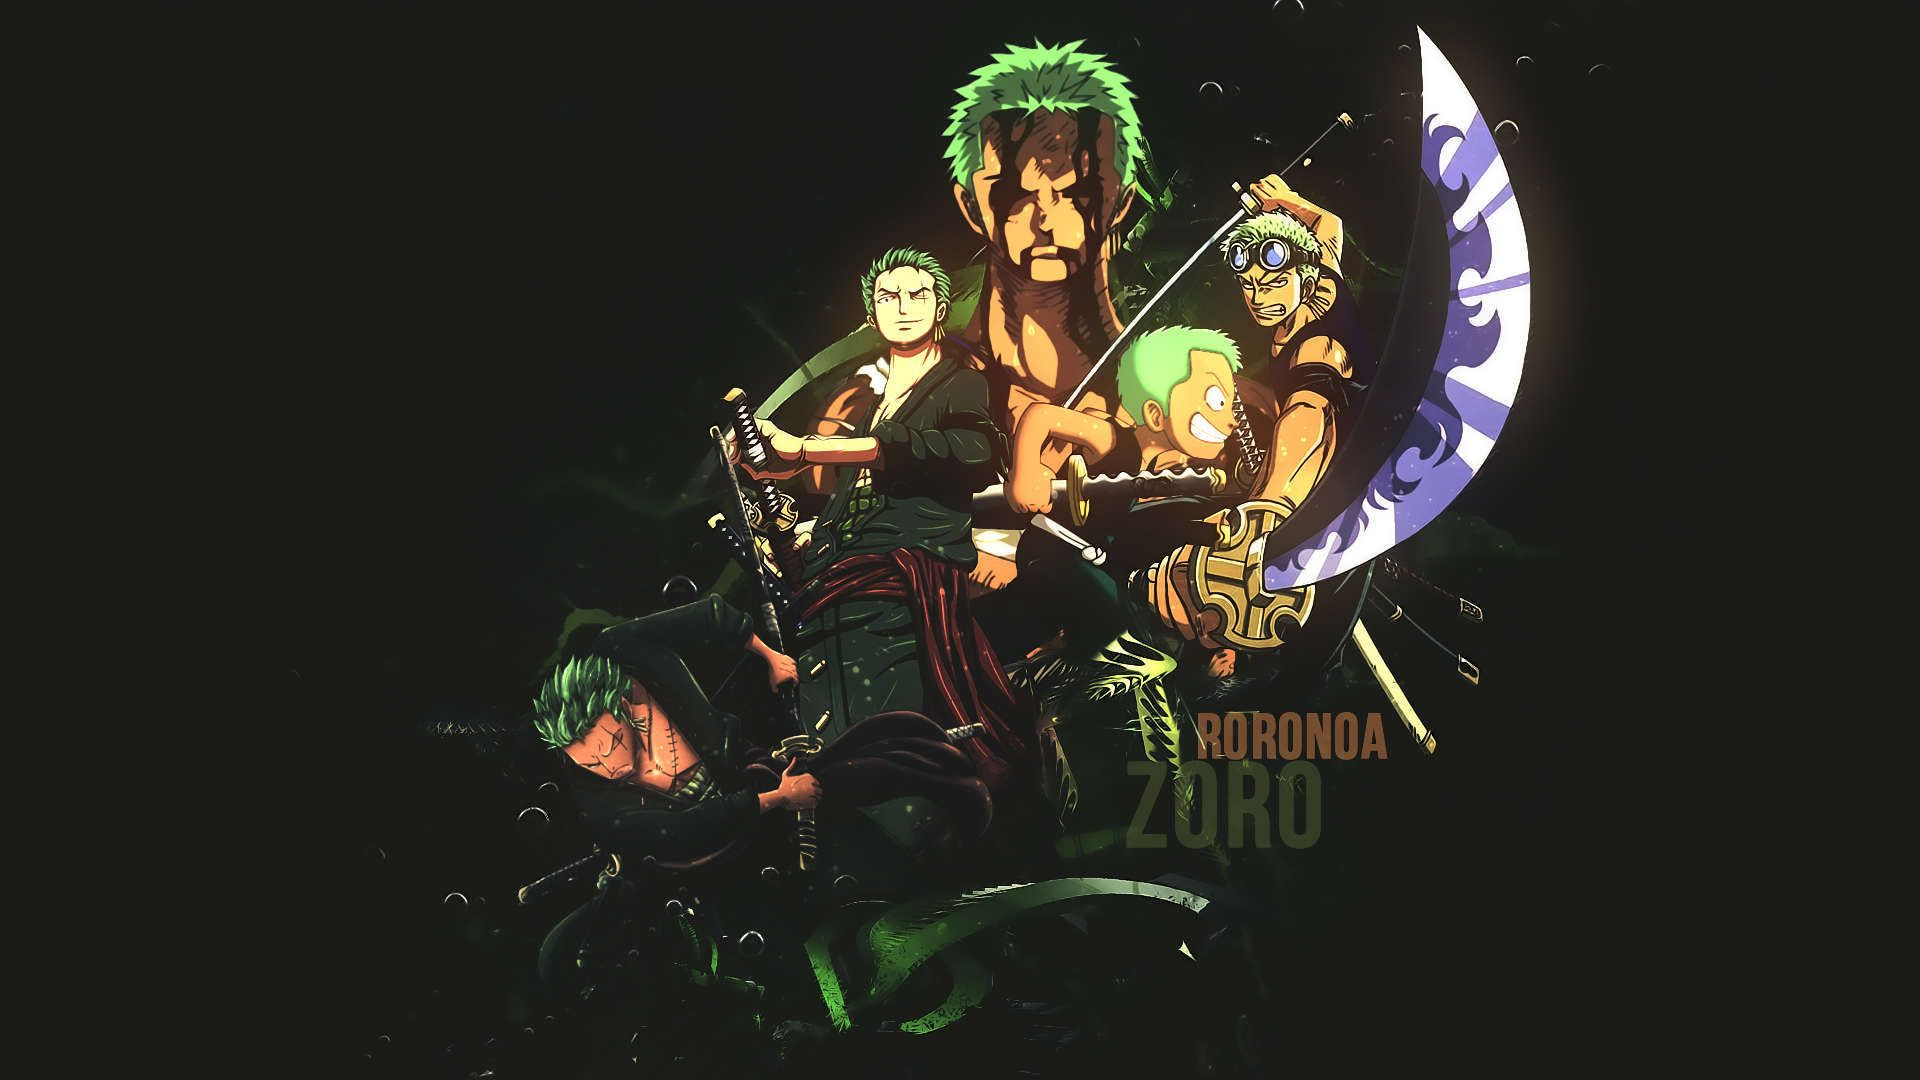 One Piece Zoro Hd Wallpapers Wallpaper Backgrounds Zoro